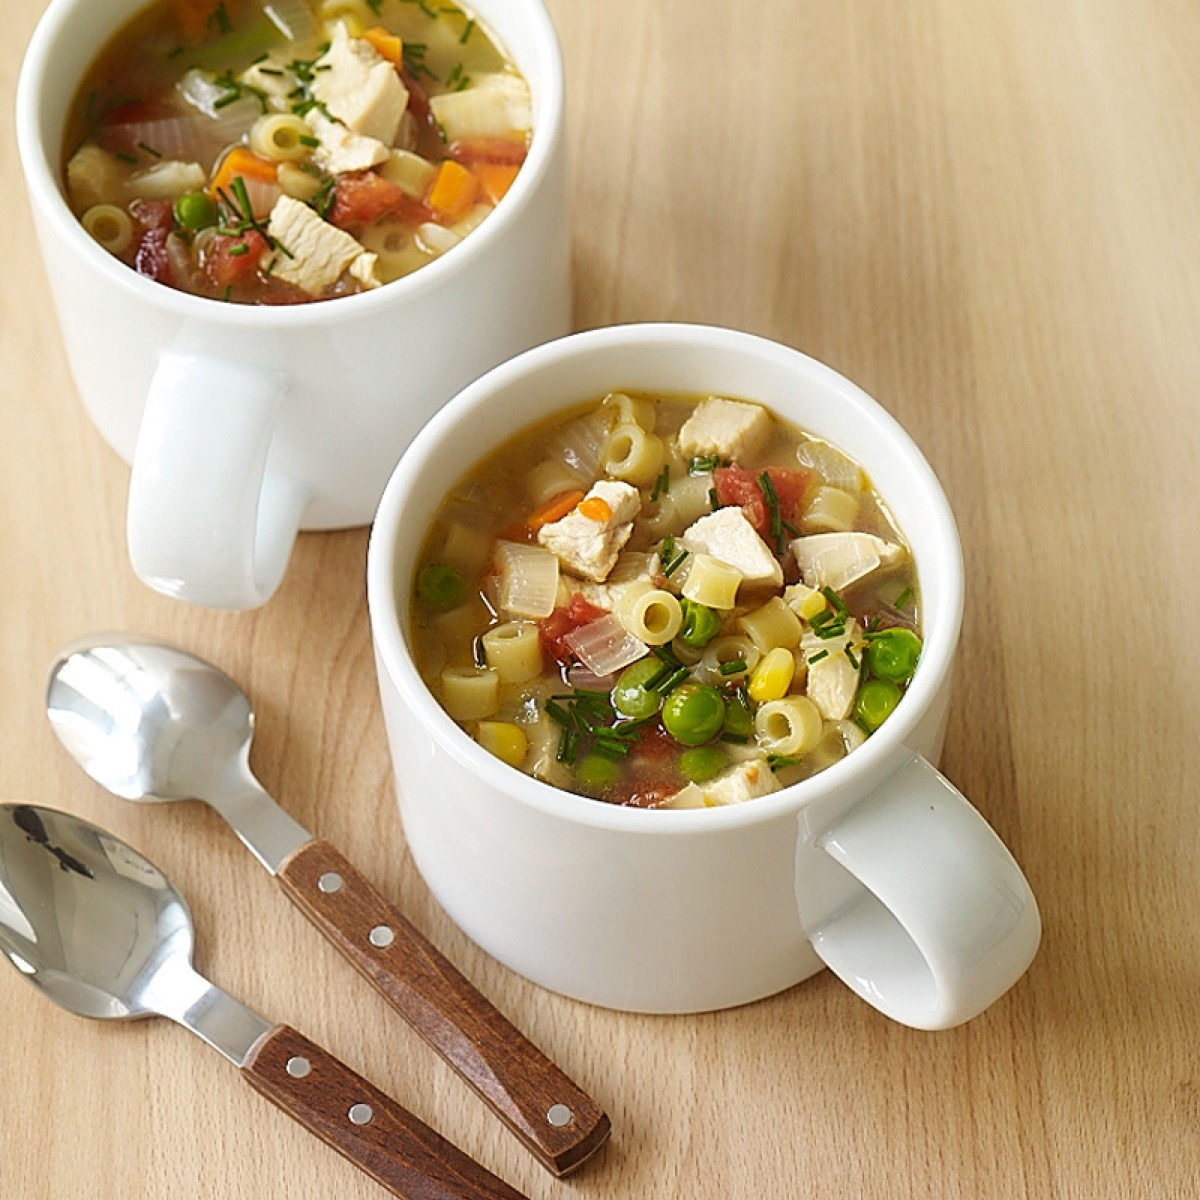 chicken noodle soup in two white mugs